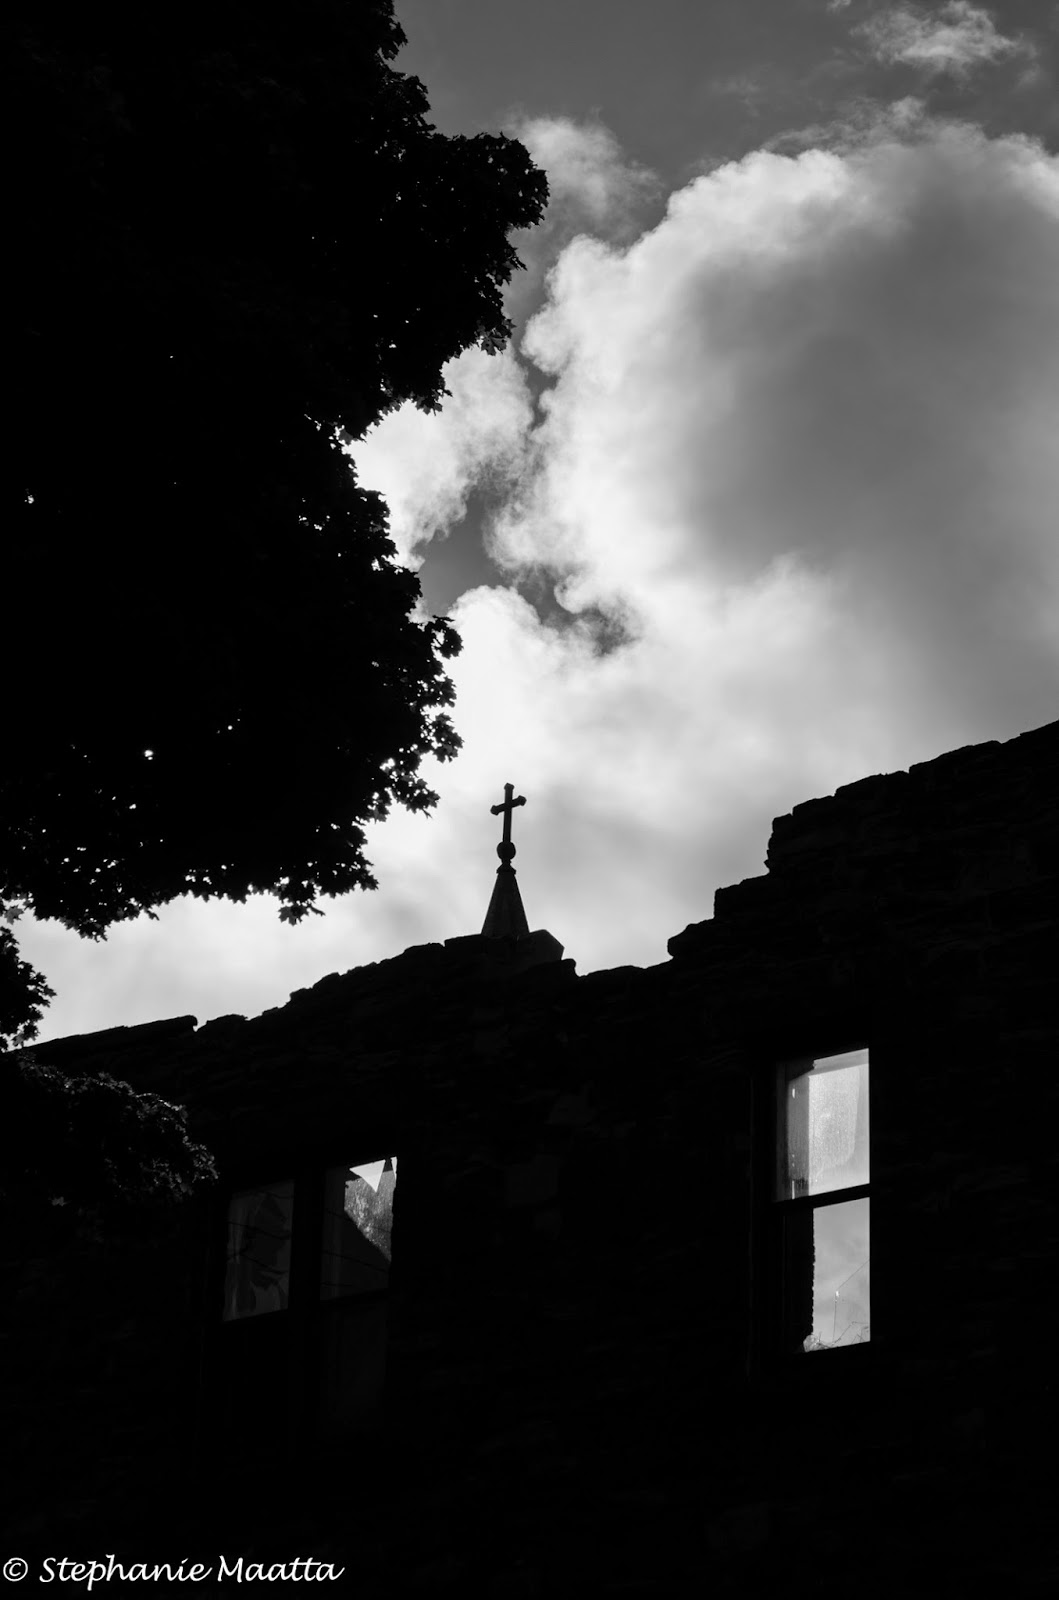 building with caved in roof and church steepl in background, image in black and white